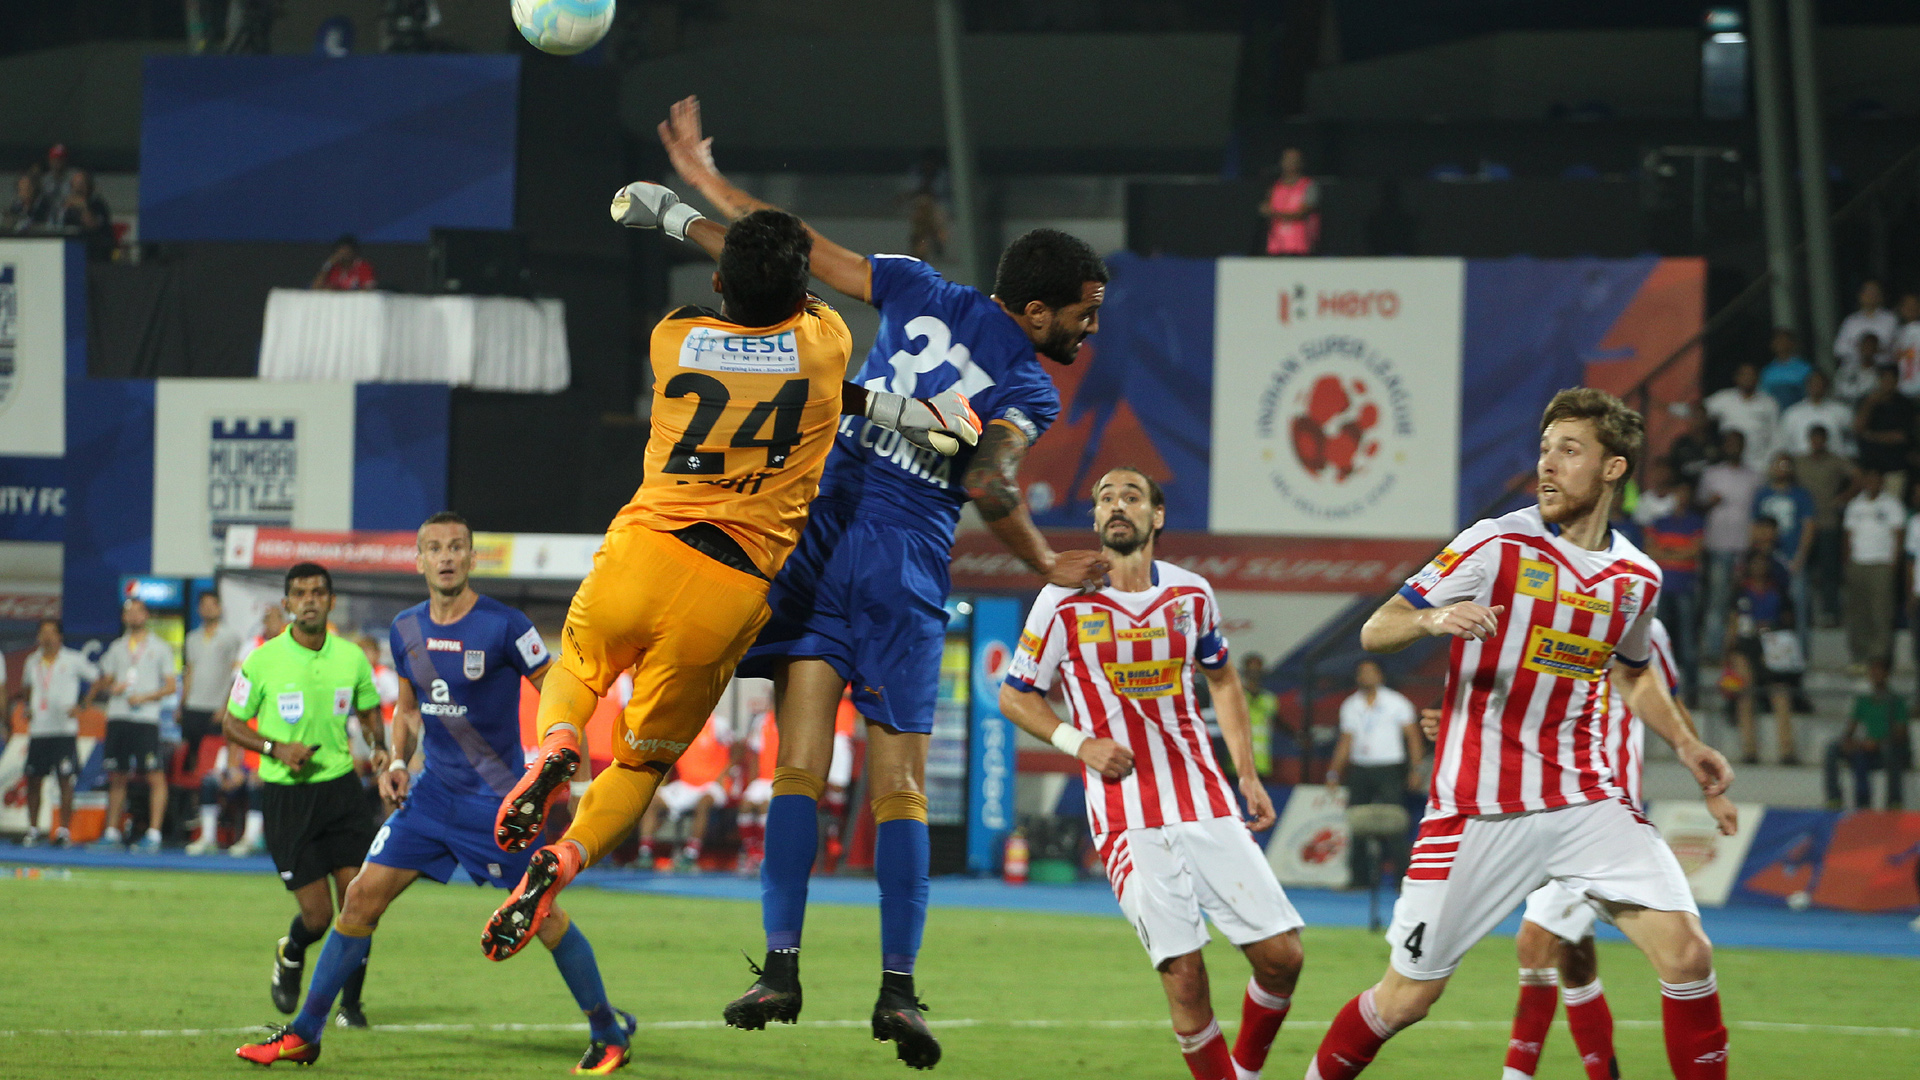 Mumbai City FC Atletico de Kolkata ISL semi final season 3 2016